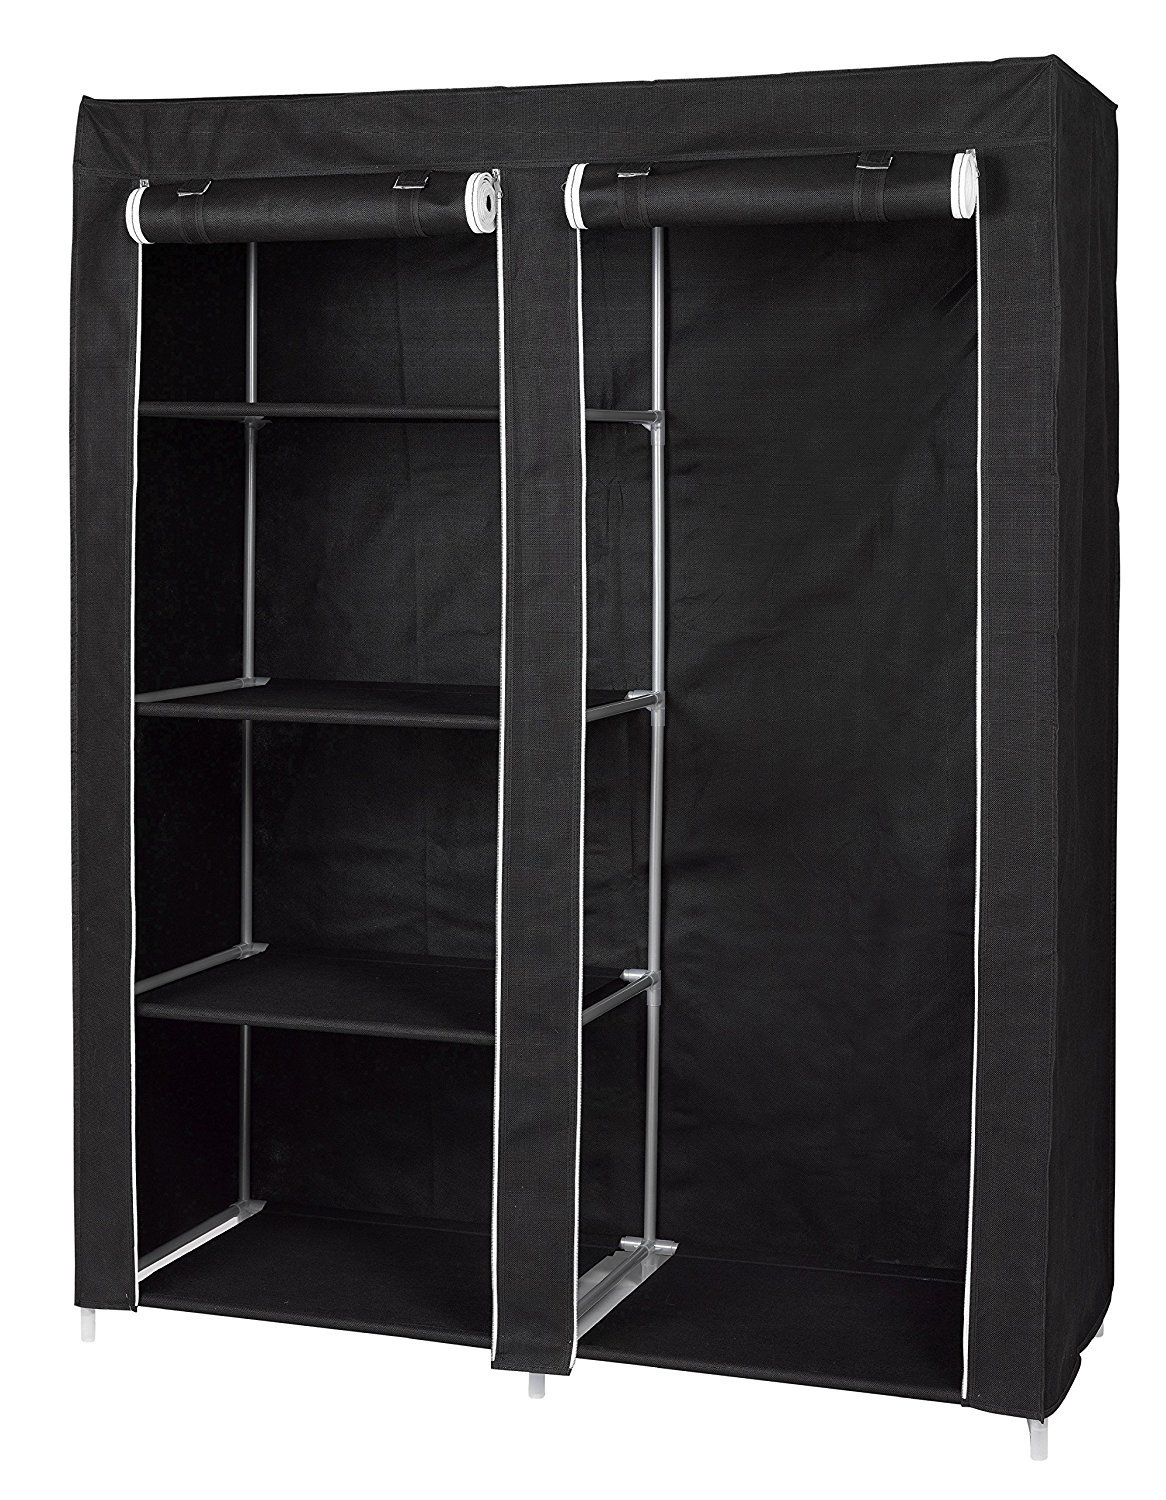 FloridaBrands Portable Closet Wardrobe - 62'' Clothes Closet Storage Organizer and Non-Woven Fabric Standing Wardrobe with Hanging Rack and 4 Shelves for Keeping Clothing Safe, Dust-Proof Cover by by FloridaBrands (Image #2)